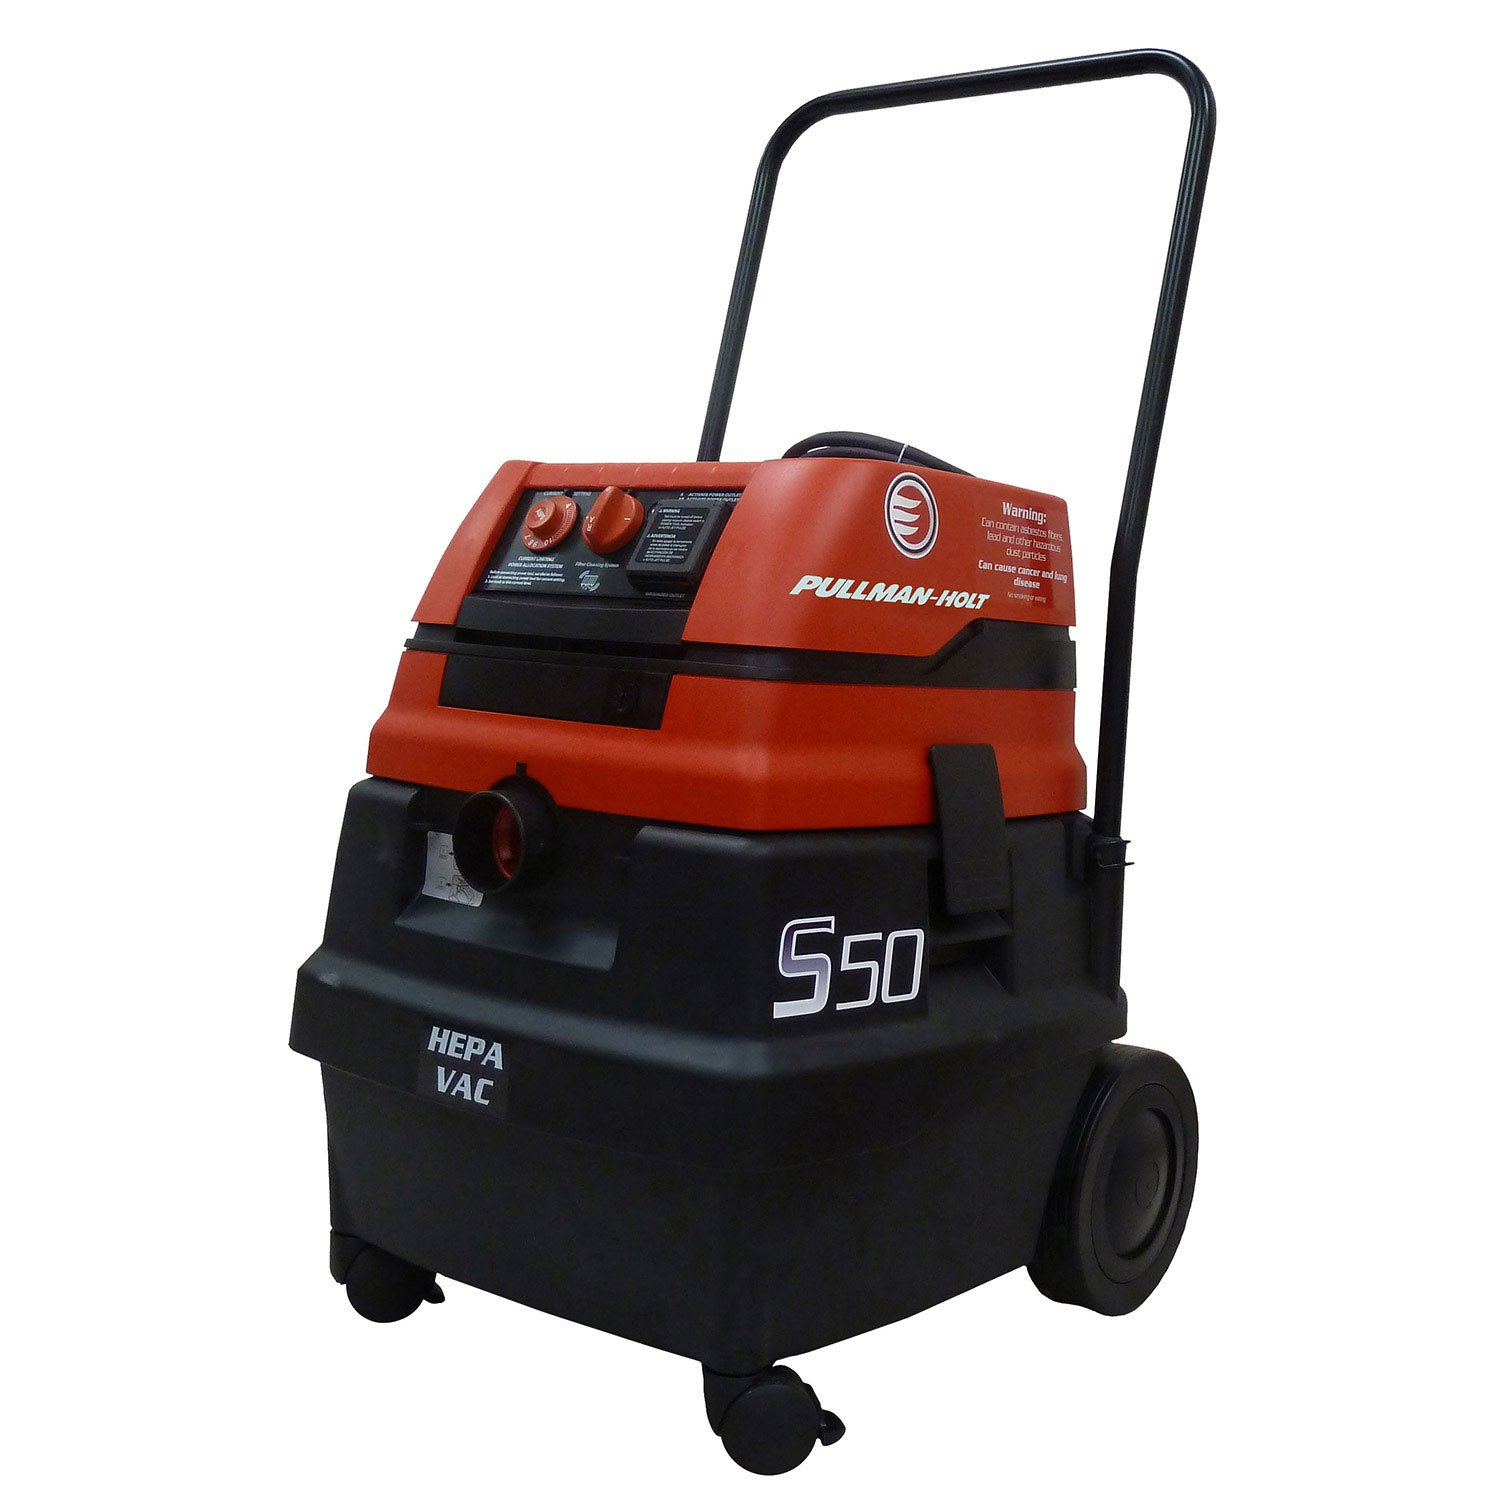 Pullman Holt HEPA Wet/Dry Vacuum, 120V w/Tools by Pullman-Holt